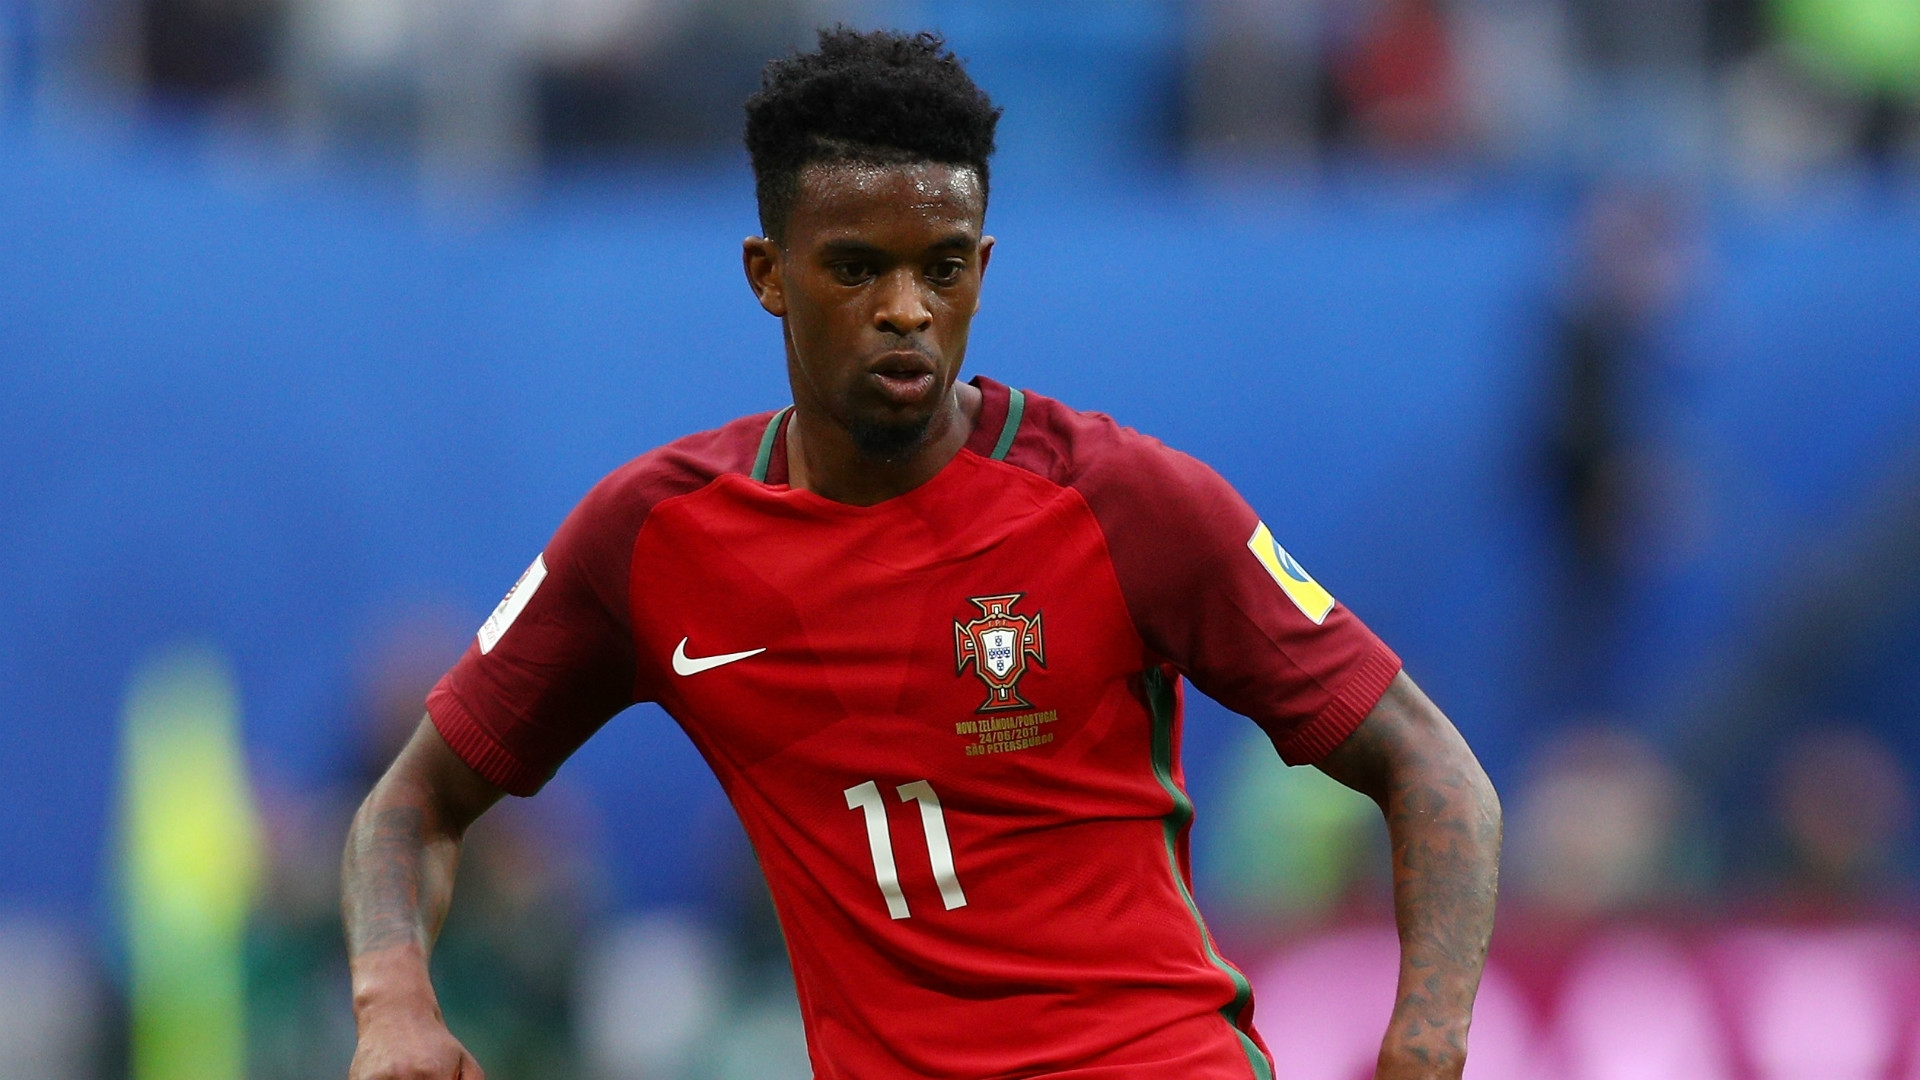 Semedo arrives at Barcelona with all these expectations on his young shoulders.